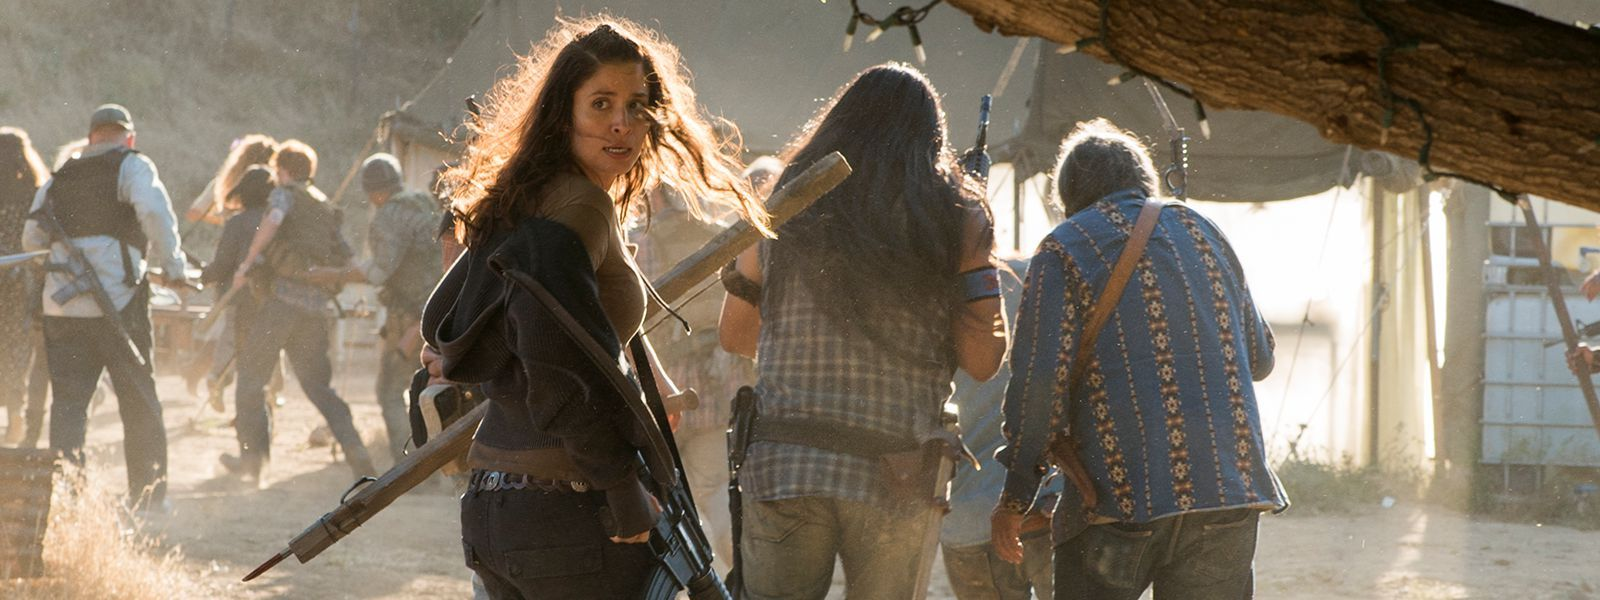 fear-the-walking-dead-episode-312-ofelia-mason-post-800×600